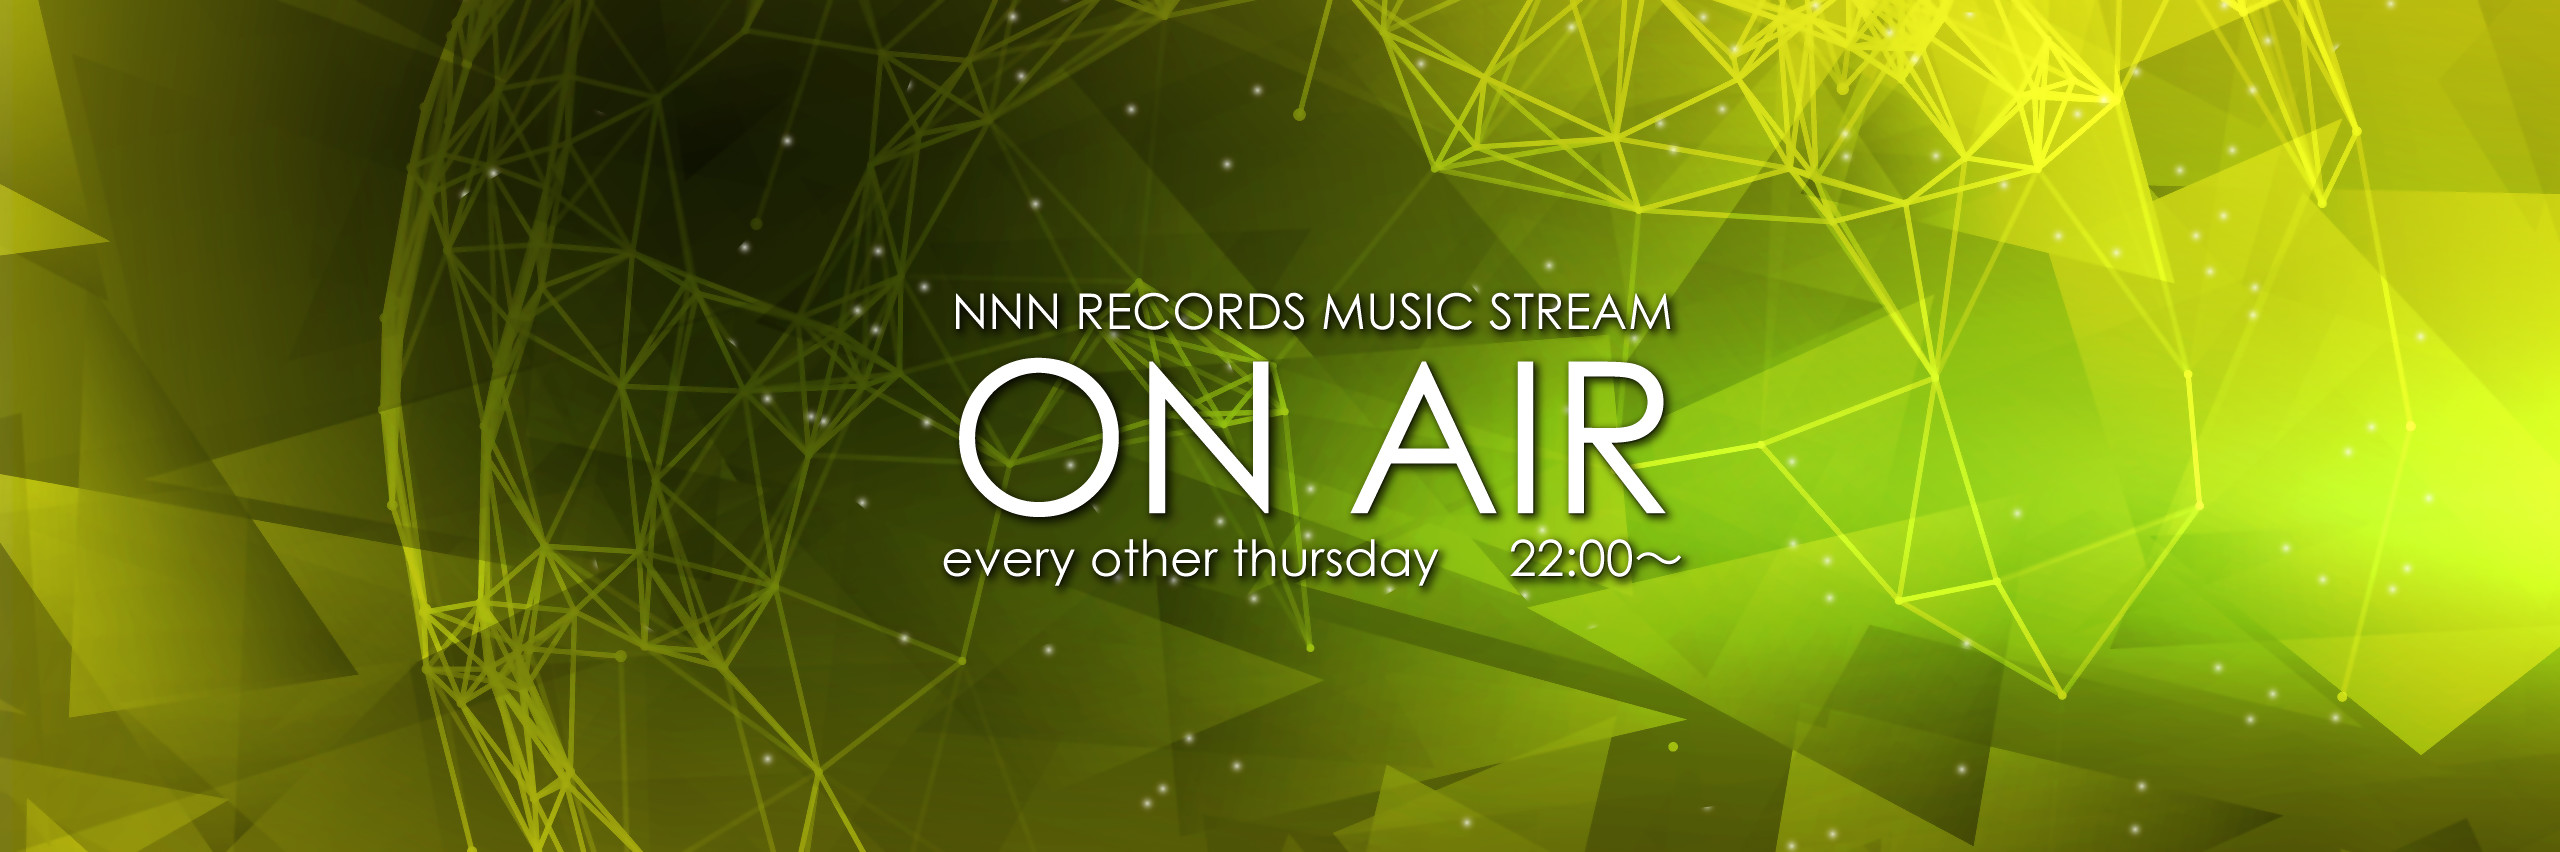 NNN RECORDS MUSIC STREAM